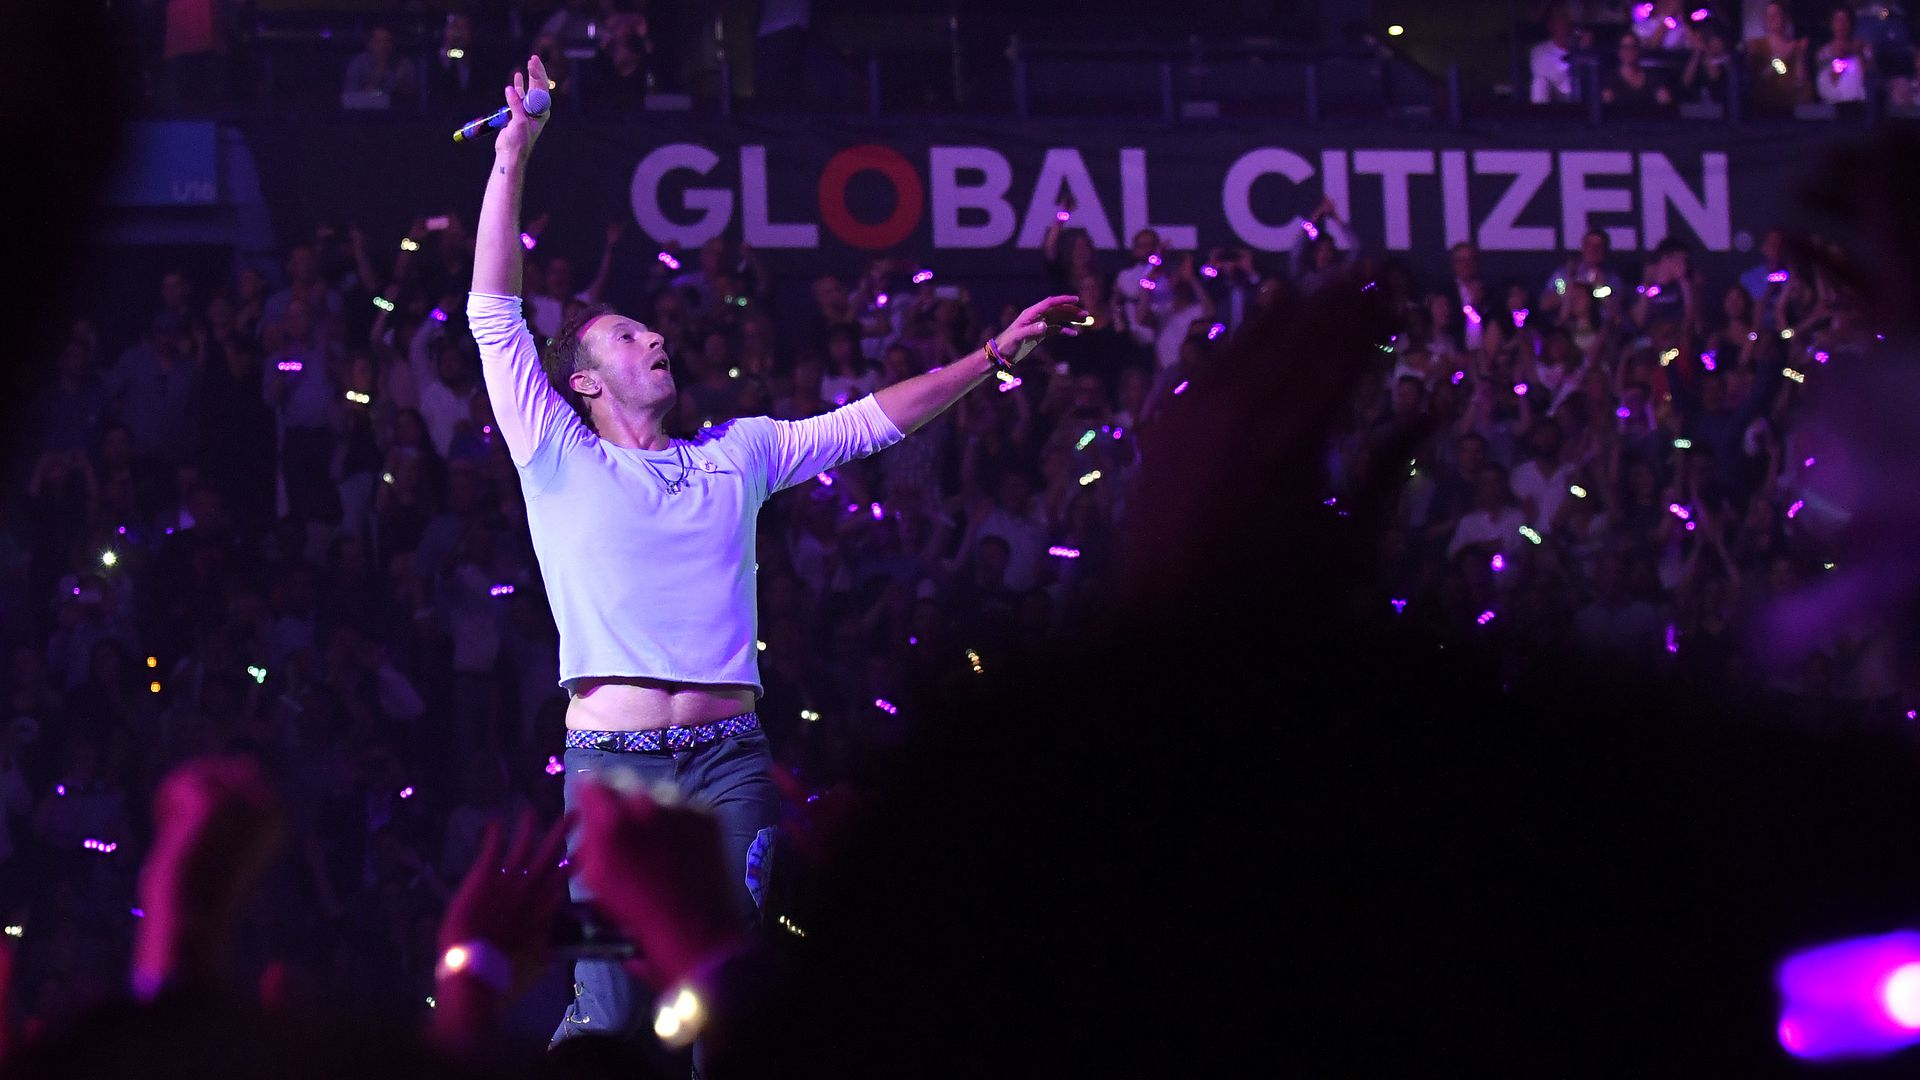 Global Dance Festival 2020.Global Citizen Plans Live Aid Style Concert Across 5